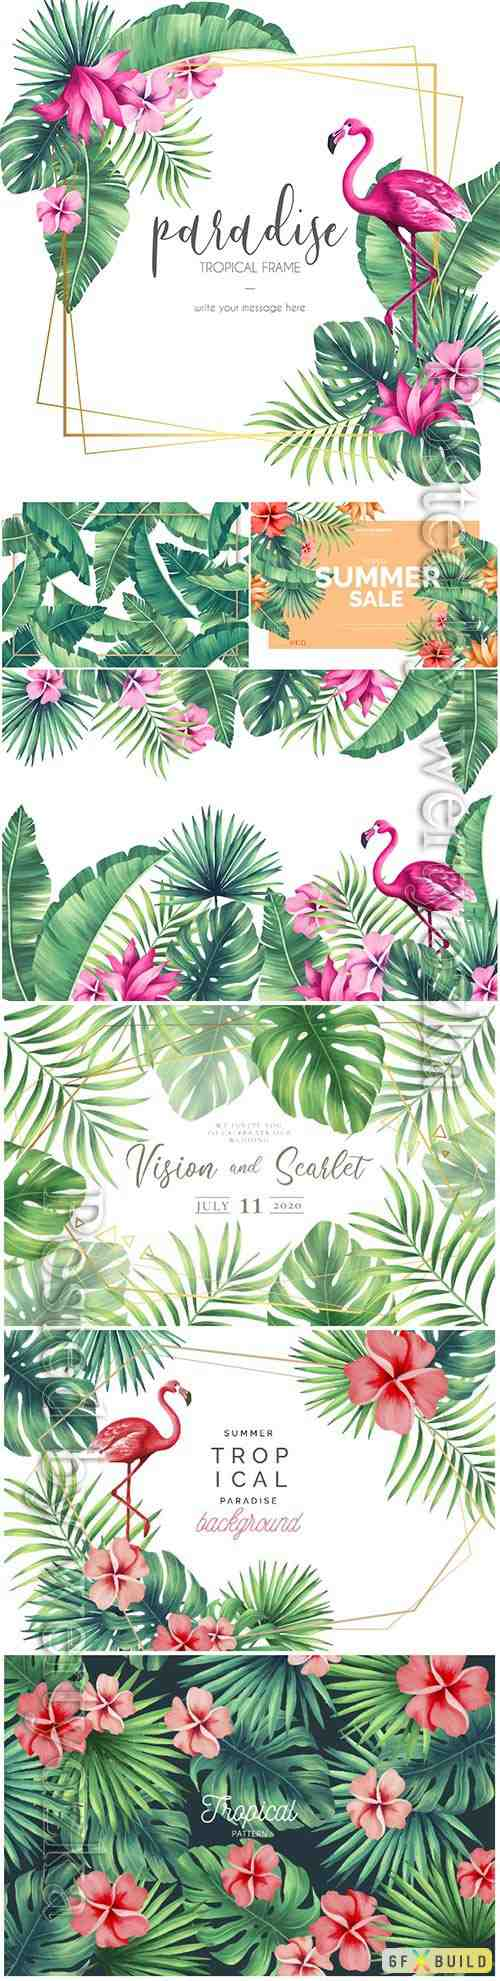 Tropical paradise summer vector background